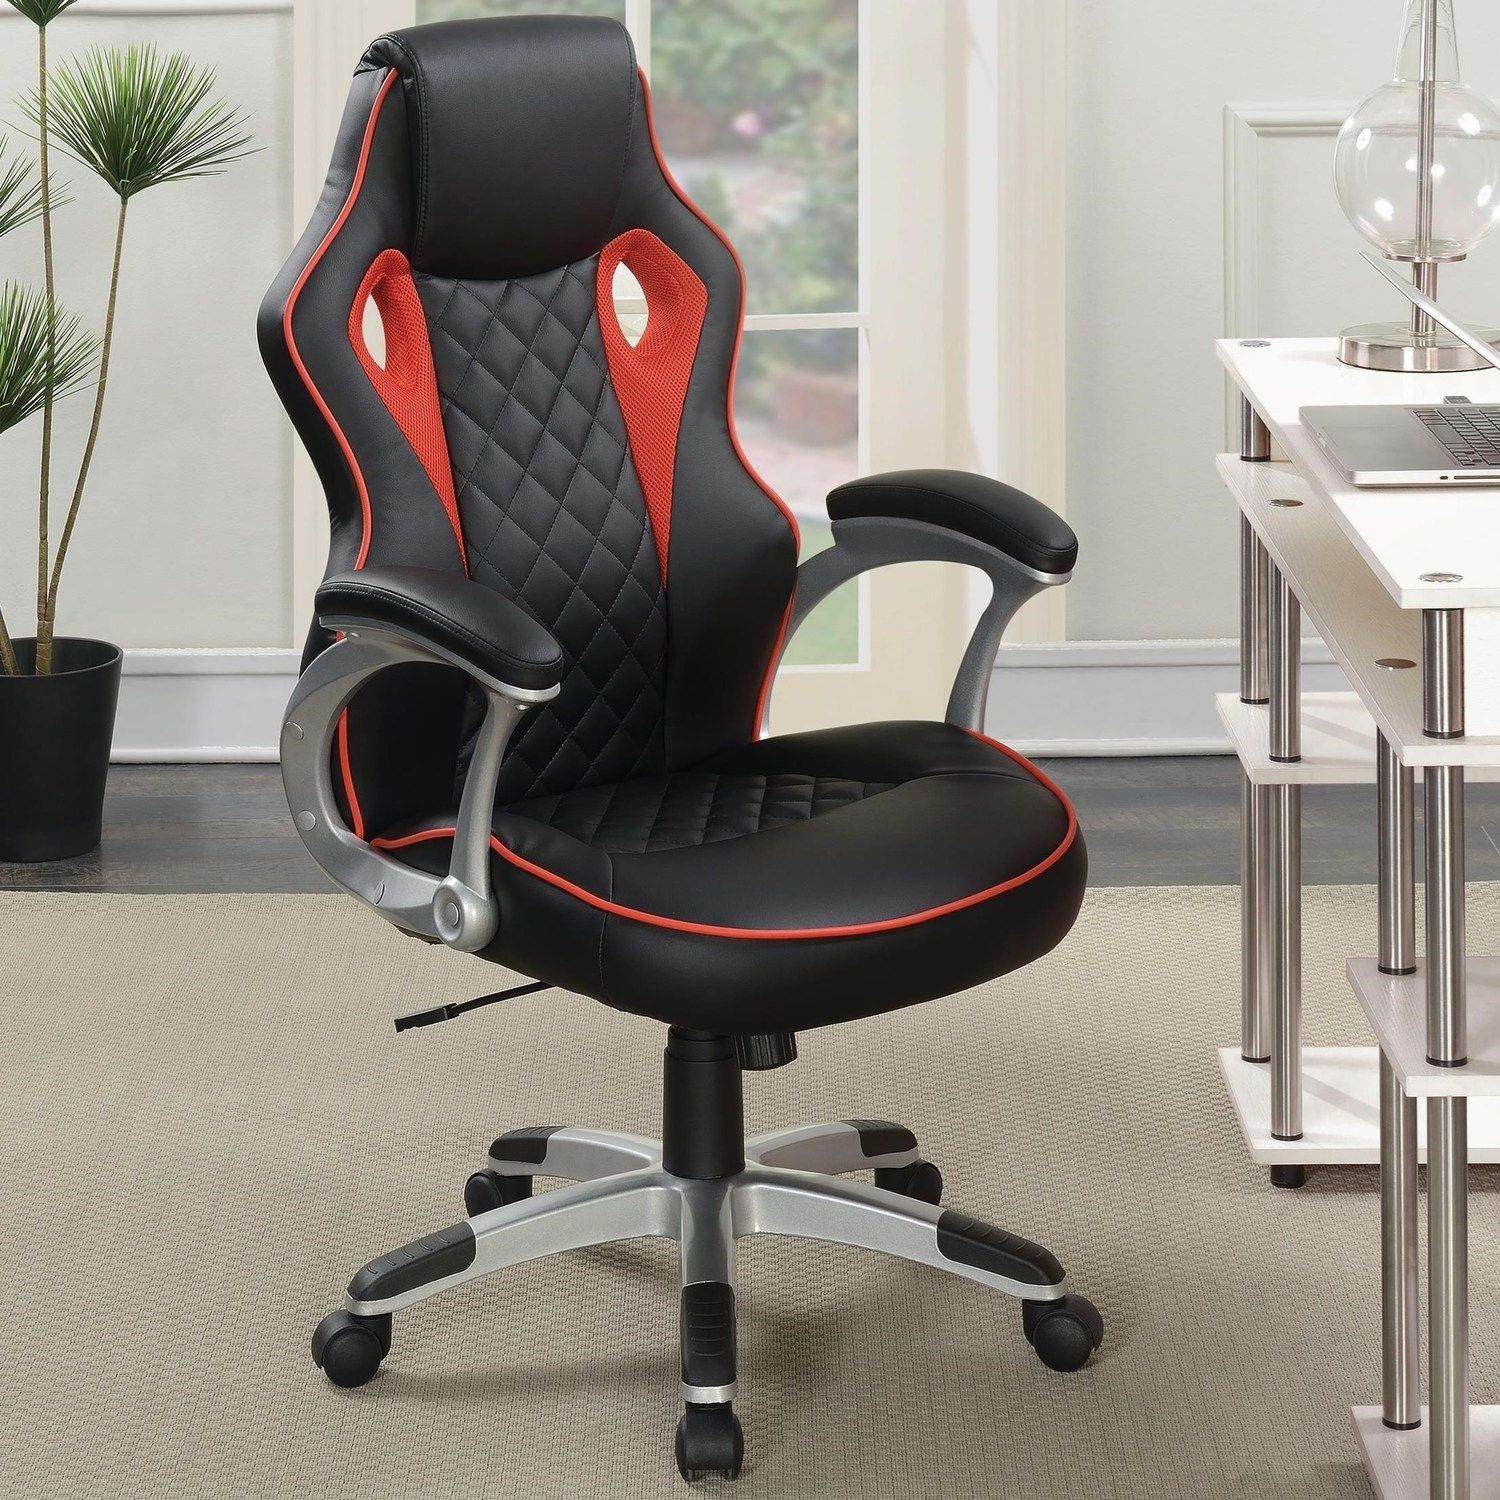 CS497 Computer Chair in 2020 Cheap office chairs, Home